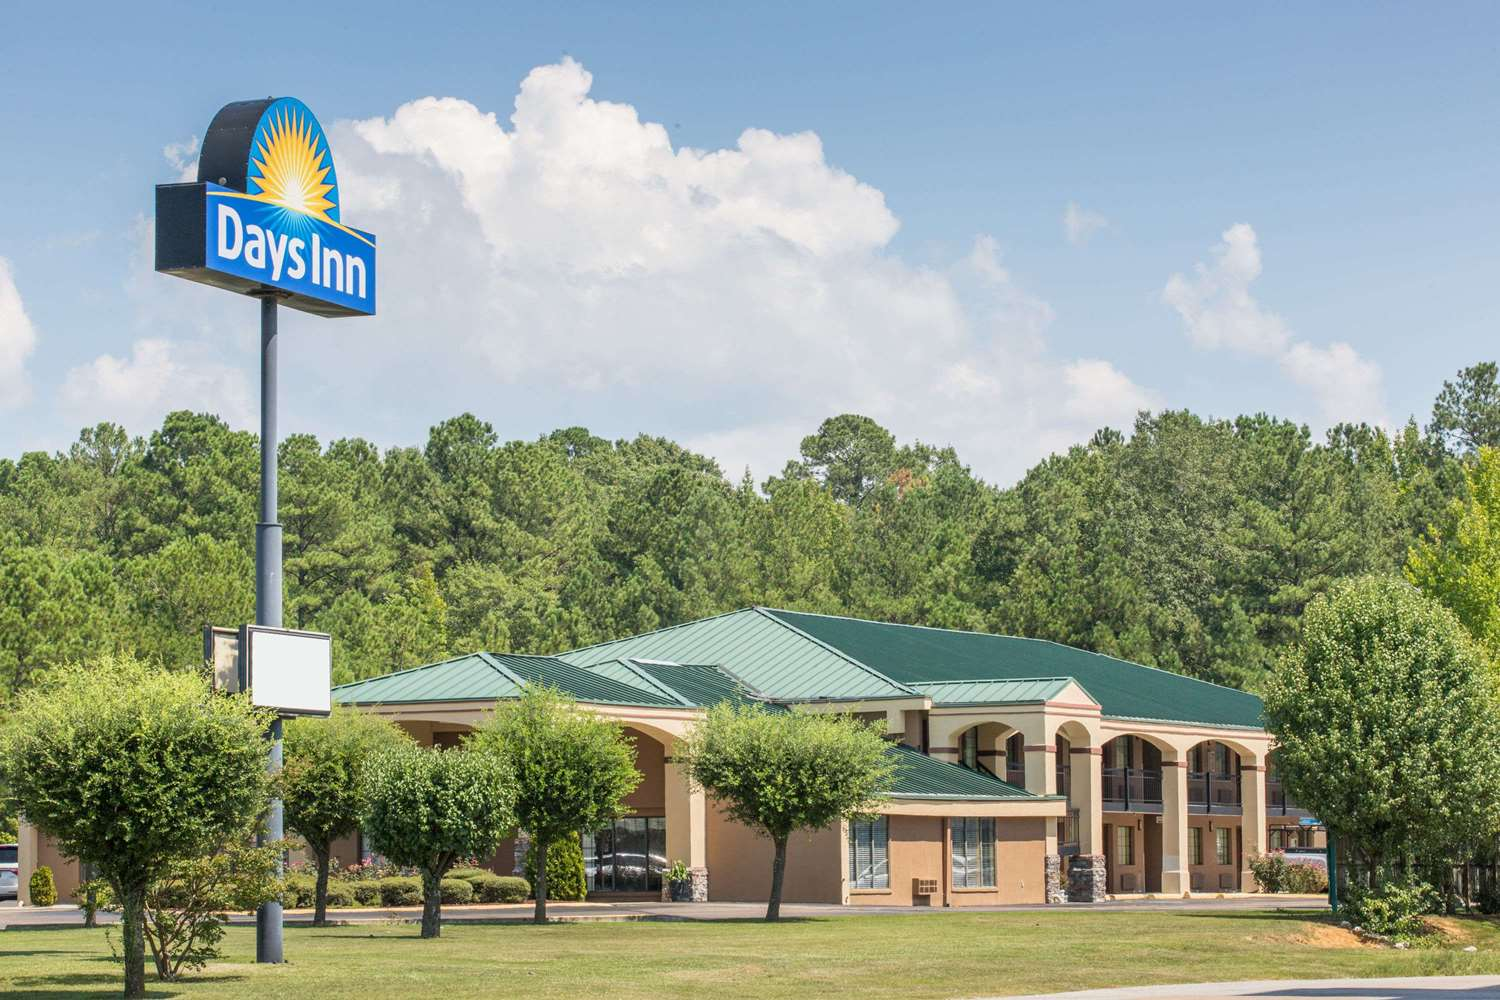 Days Inn Fulton